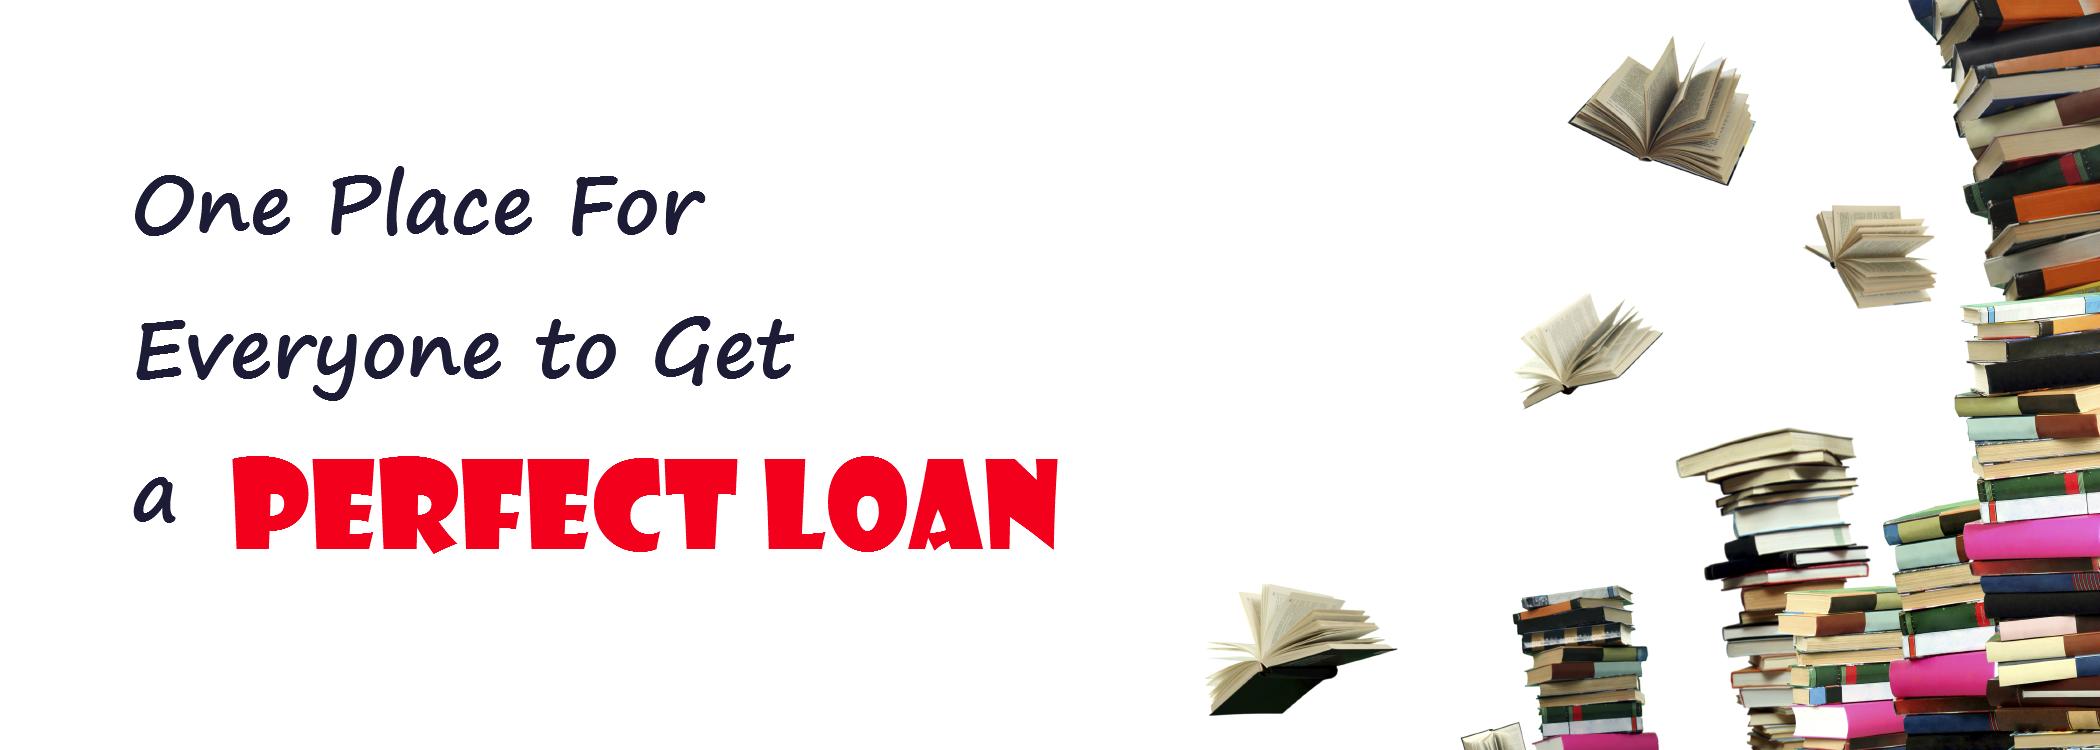 Payday loans bridgeport tx picture 3